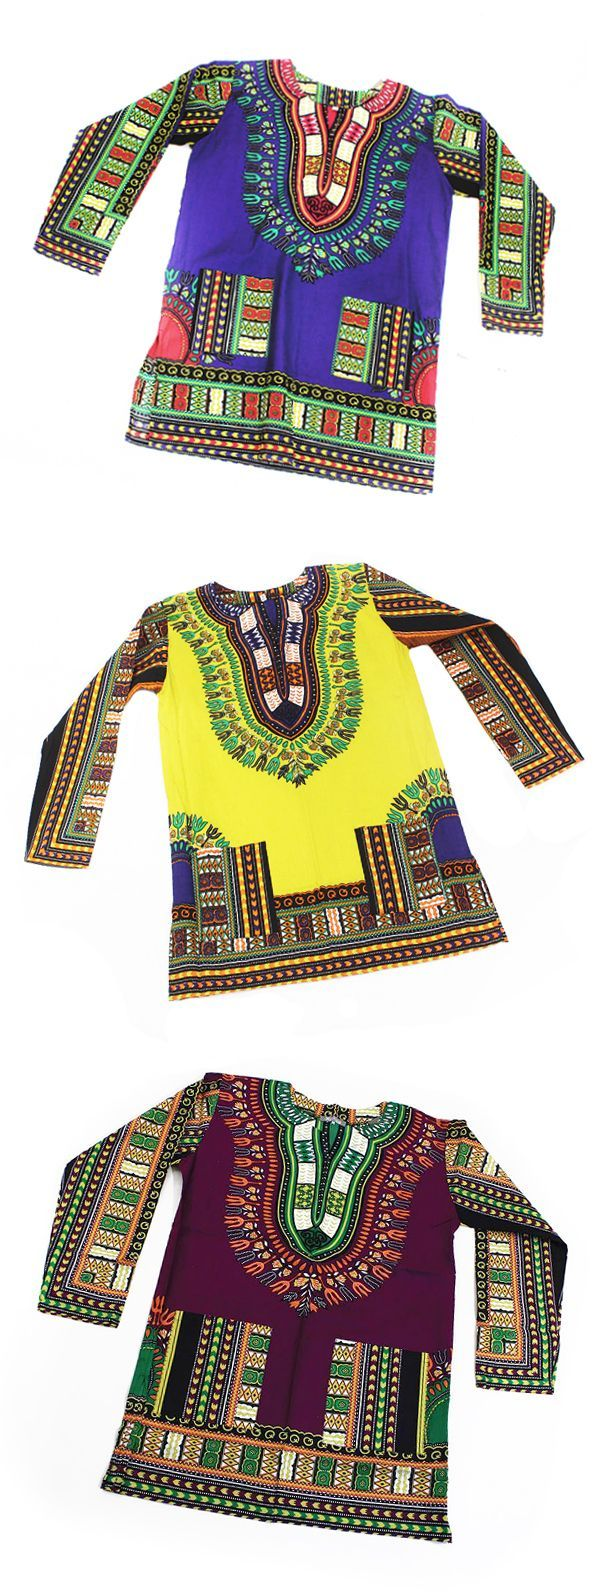 Traditional African Style Dashiki Shirts - These beautiful and bold African Dashiki shirts are both comfortable and classy.  They are a great way to celebrate African culture and history throughout Black History Month or wear it all year long to celebrate your love of Africa.  This traditional African fashion is great for wearing with jeans or leggings, or dress it up with a skirt or dress pants for wearing to work or a special event.  #dashiki #african #africa #dressycasual #africanfashion